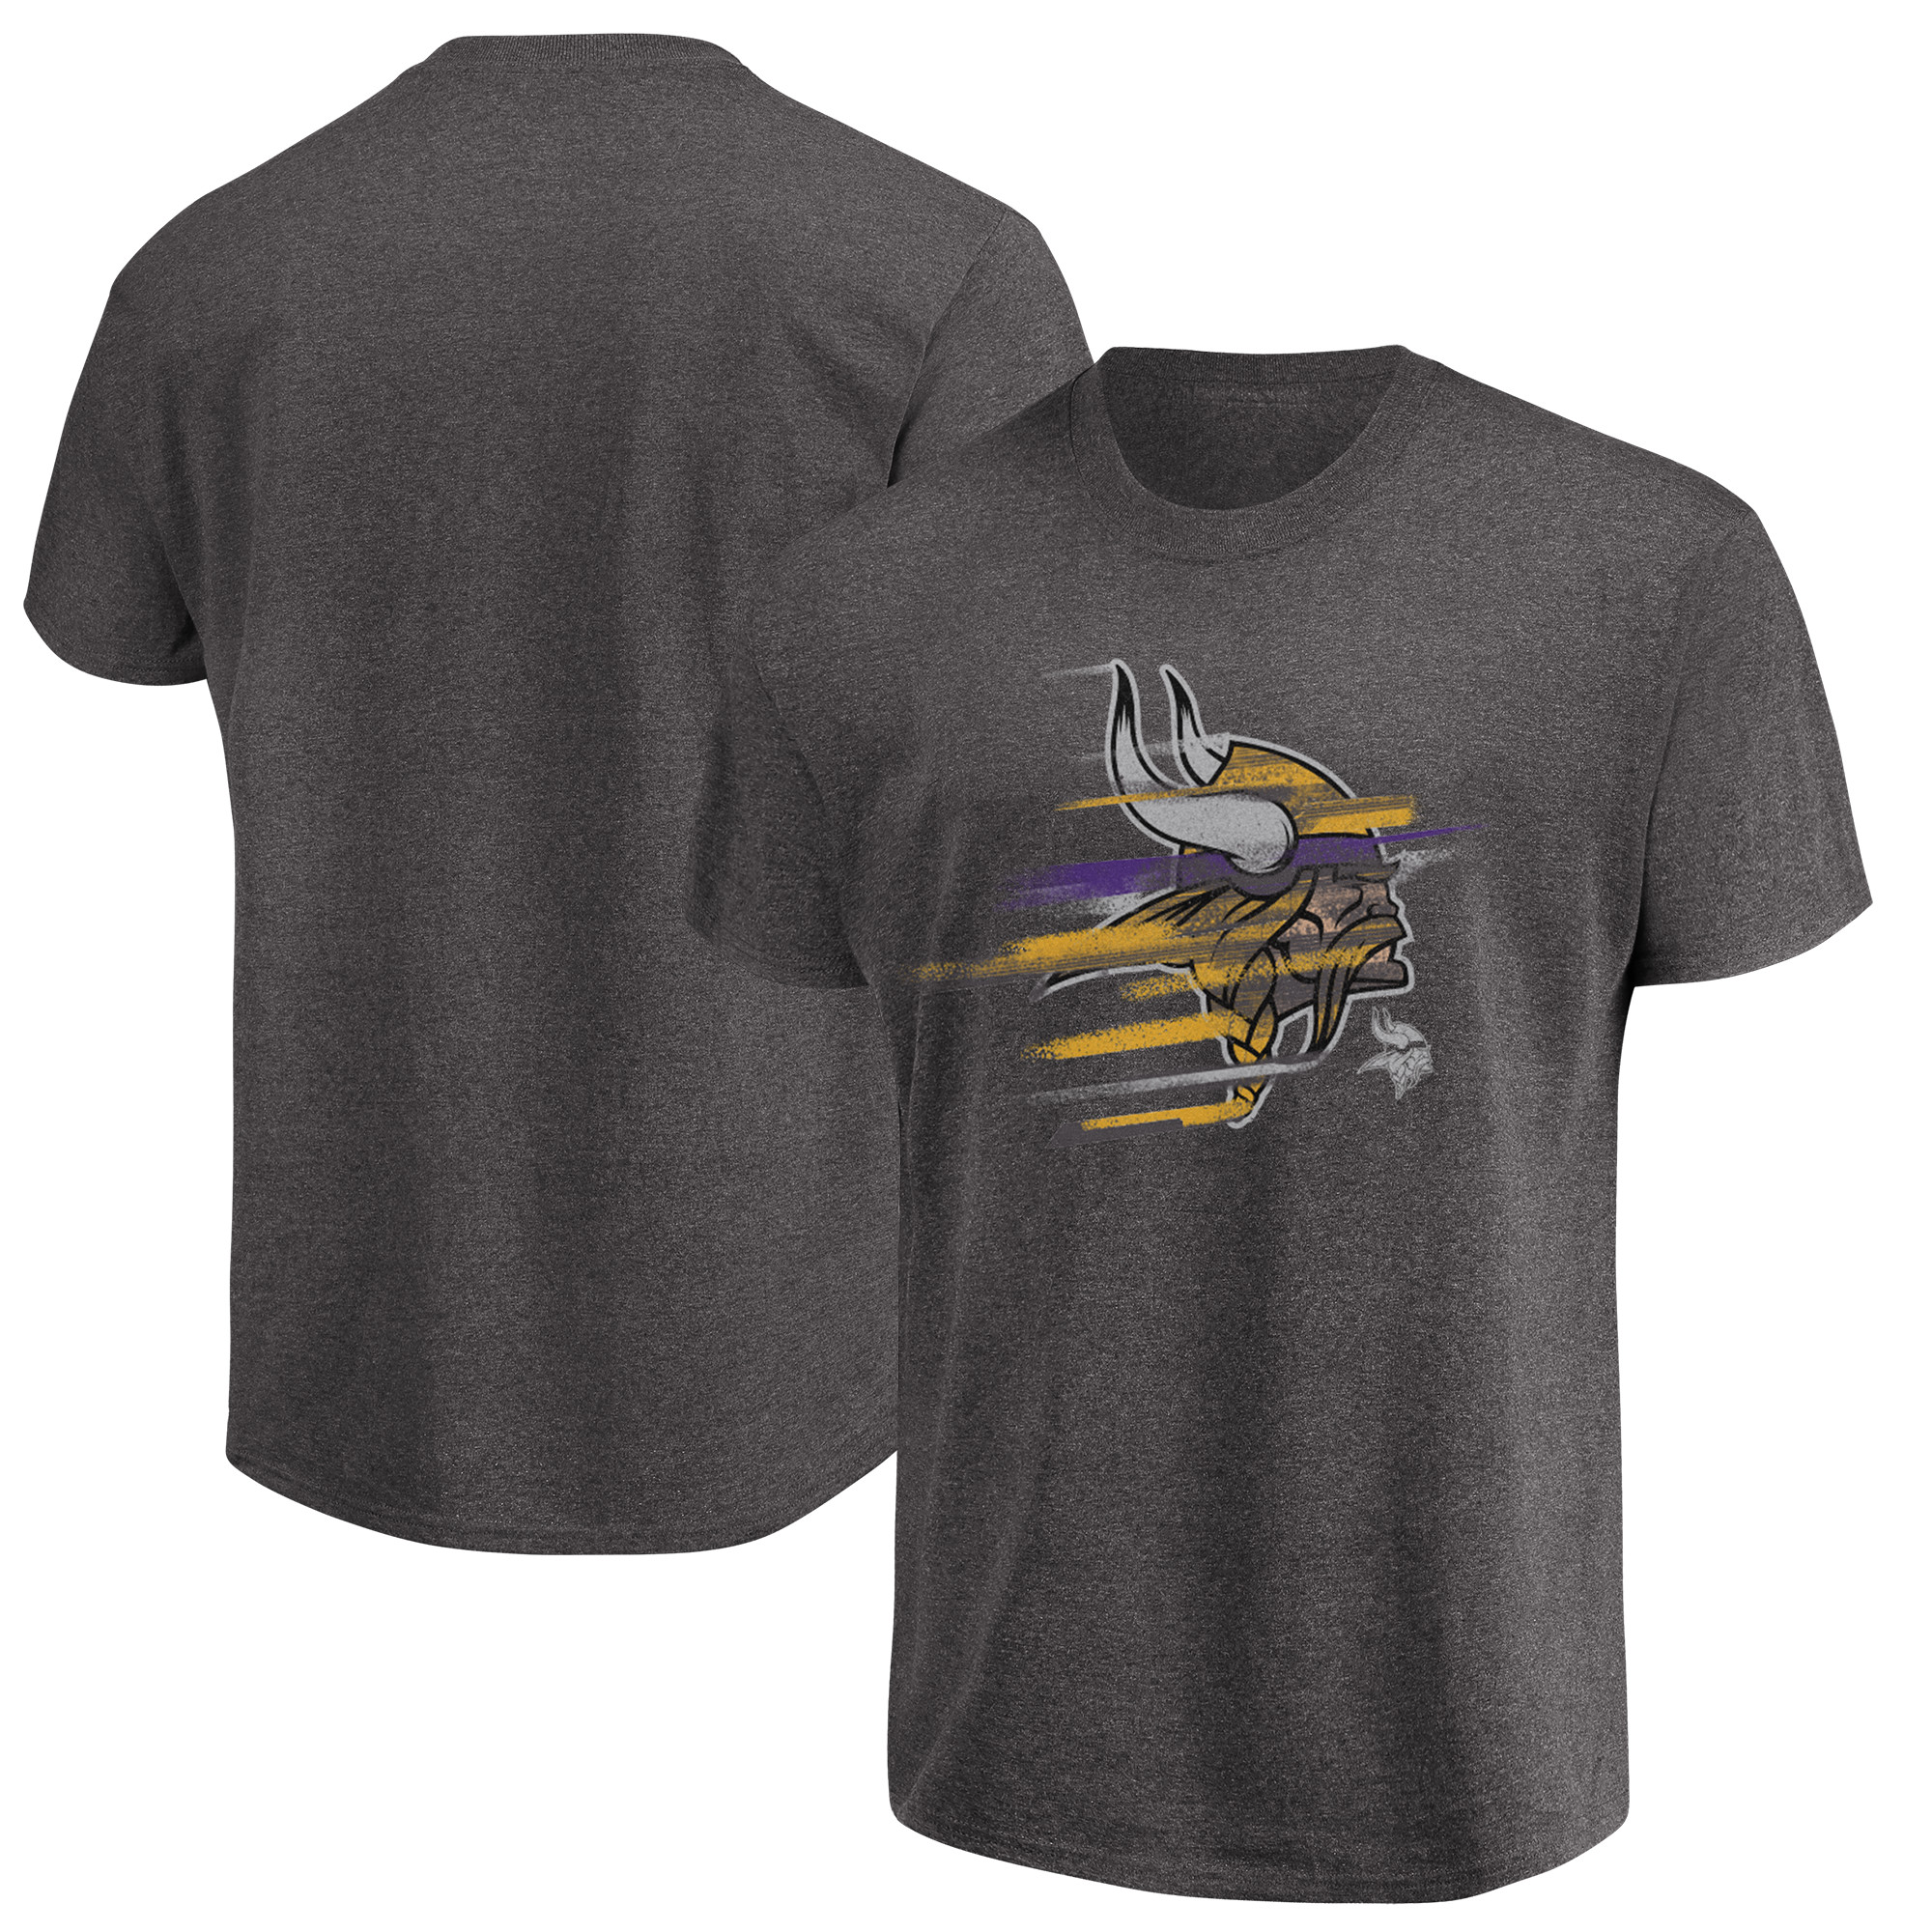 Minnesota Vikings Majestic Fierce Intensity T-Shirt - Heathered Charcoal